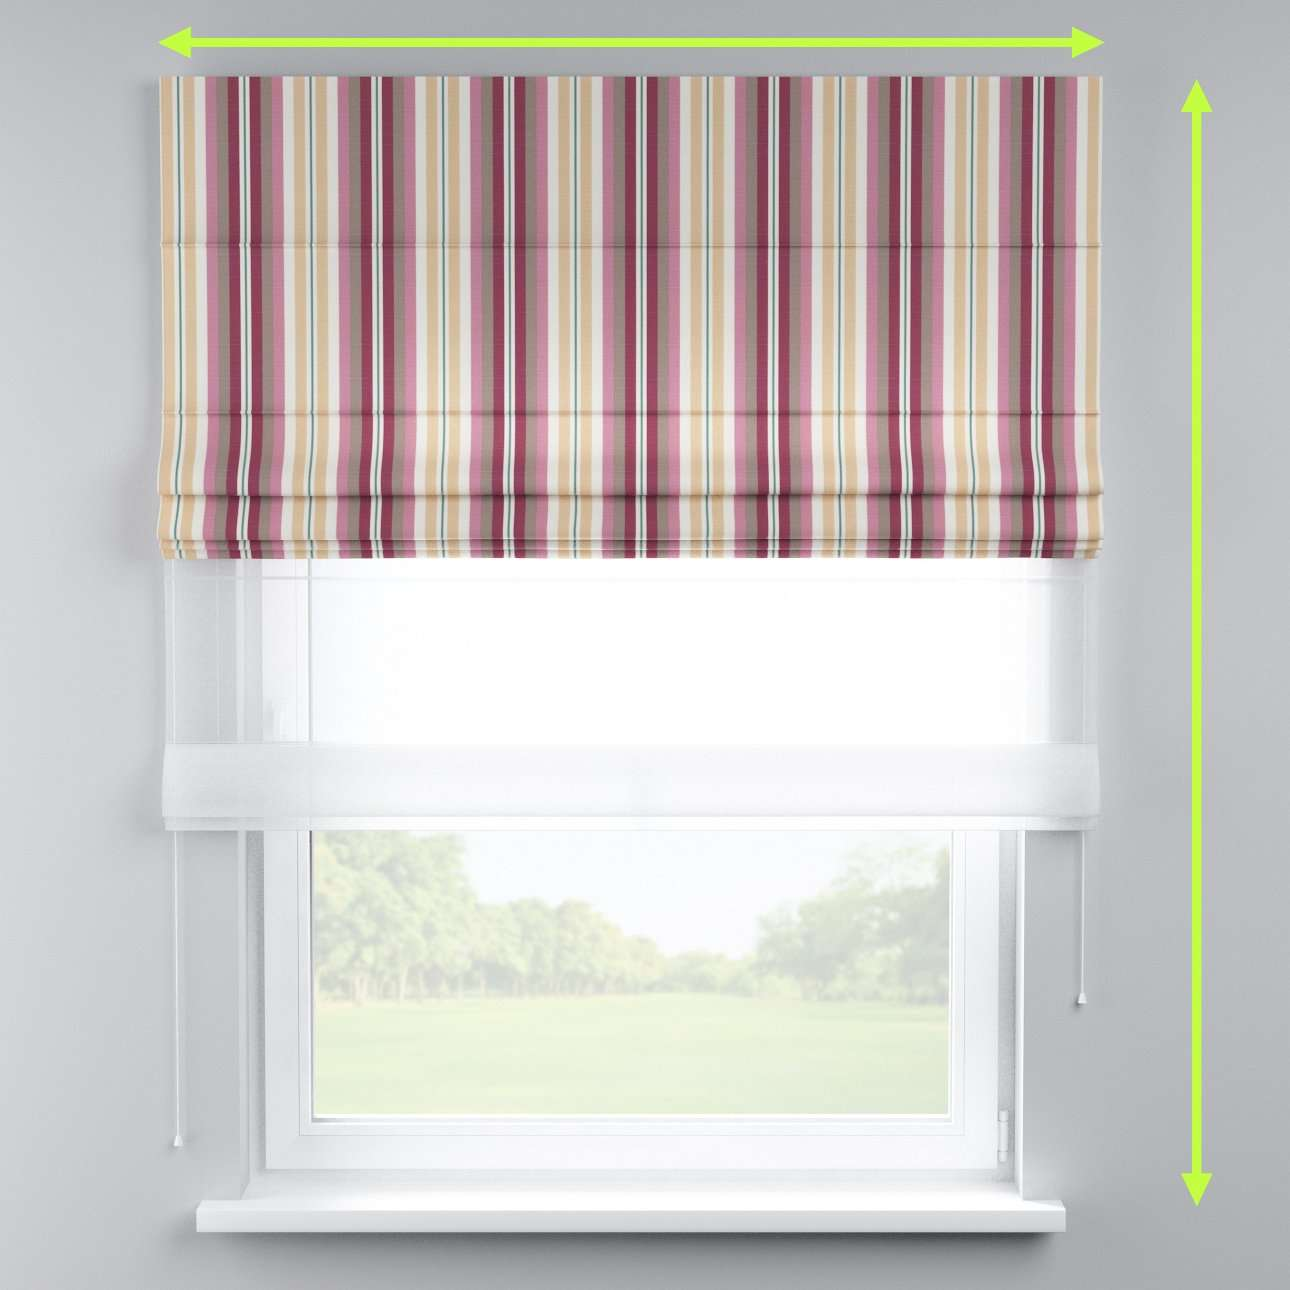 Voile and fabric roman blind (DUO II) in collection Mirella, fabric: 141-14